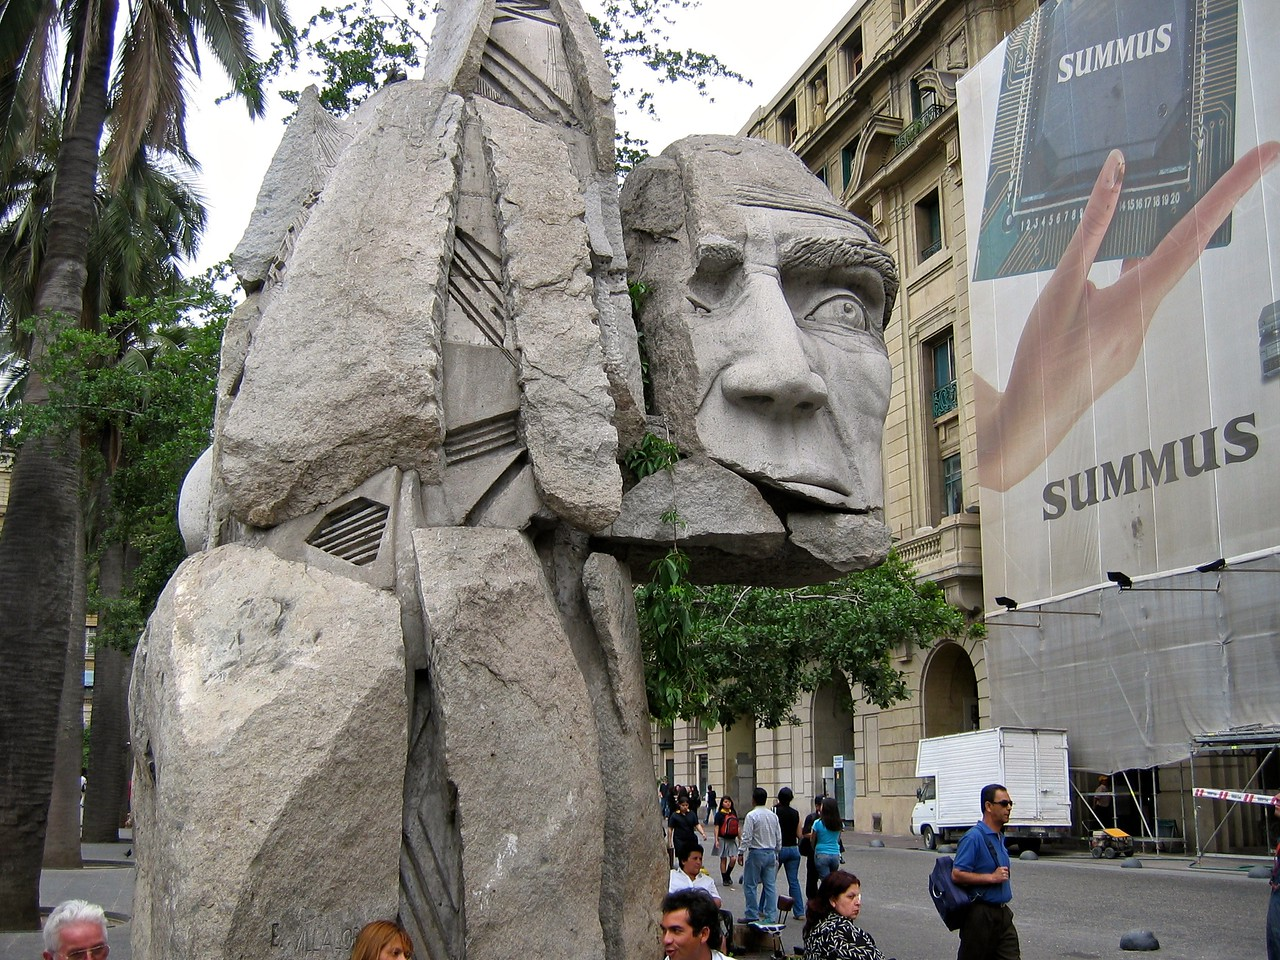 This monument was created by sculptor Enrique Villalobos and inaugurated in 1992 to commemorate the 500th anniversary of Christoher Columbus' voyage to America. The monument is meant to pay tribute to the indegenous people of Chile (the Mapuche) that fought the Spaniards since the time of the Spanish Conquistadores.